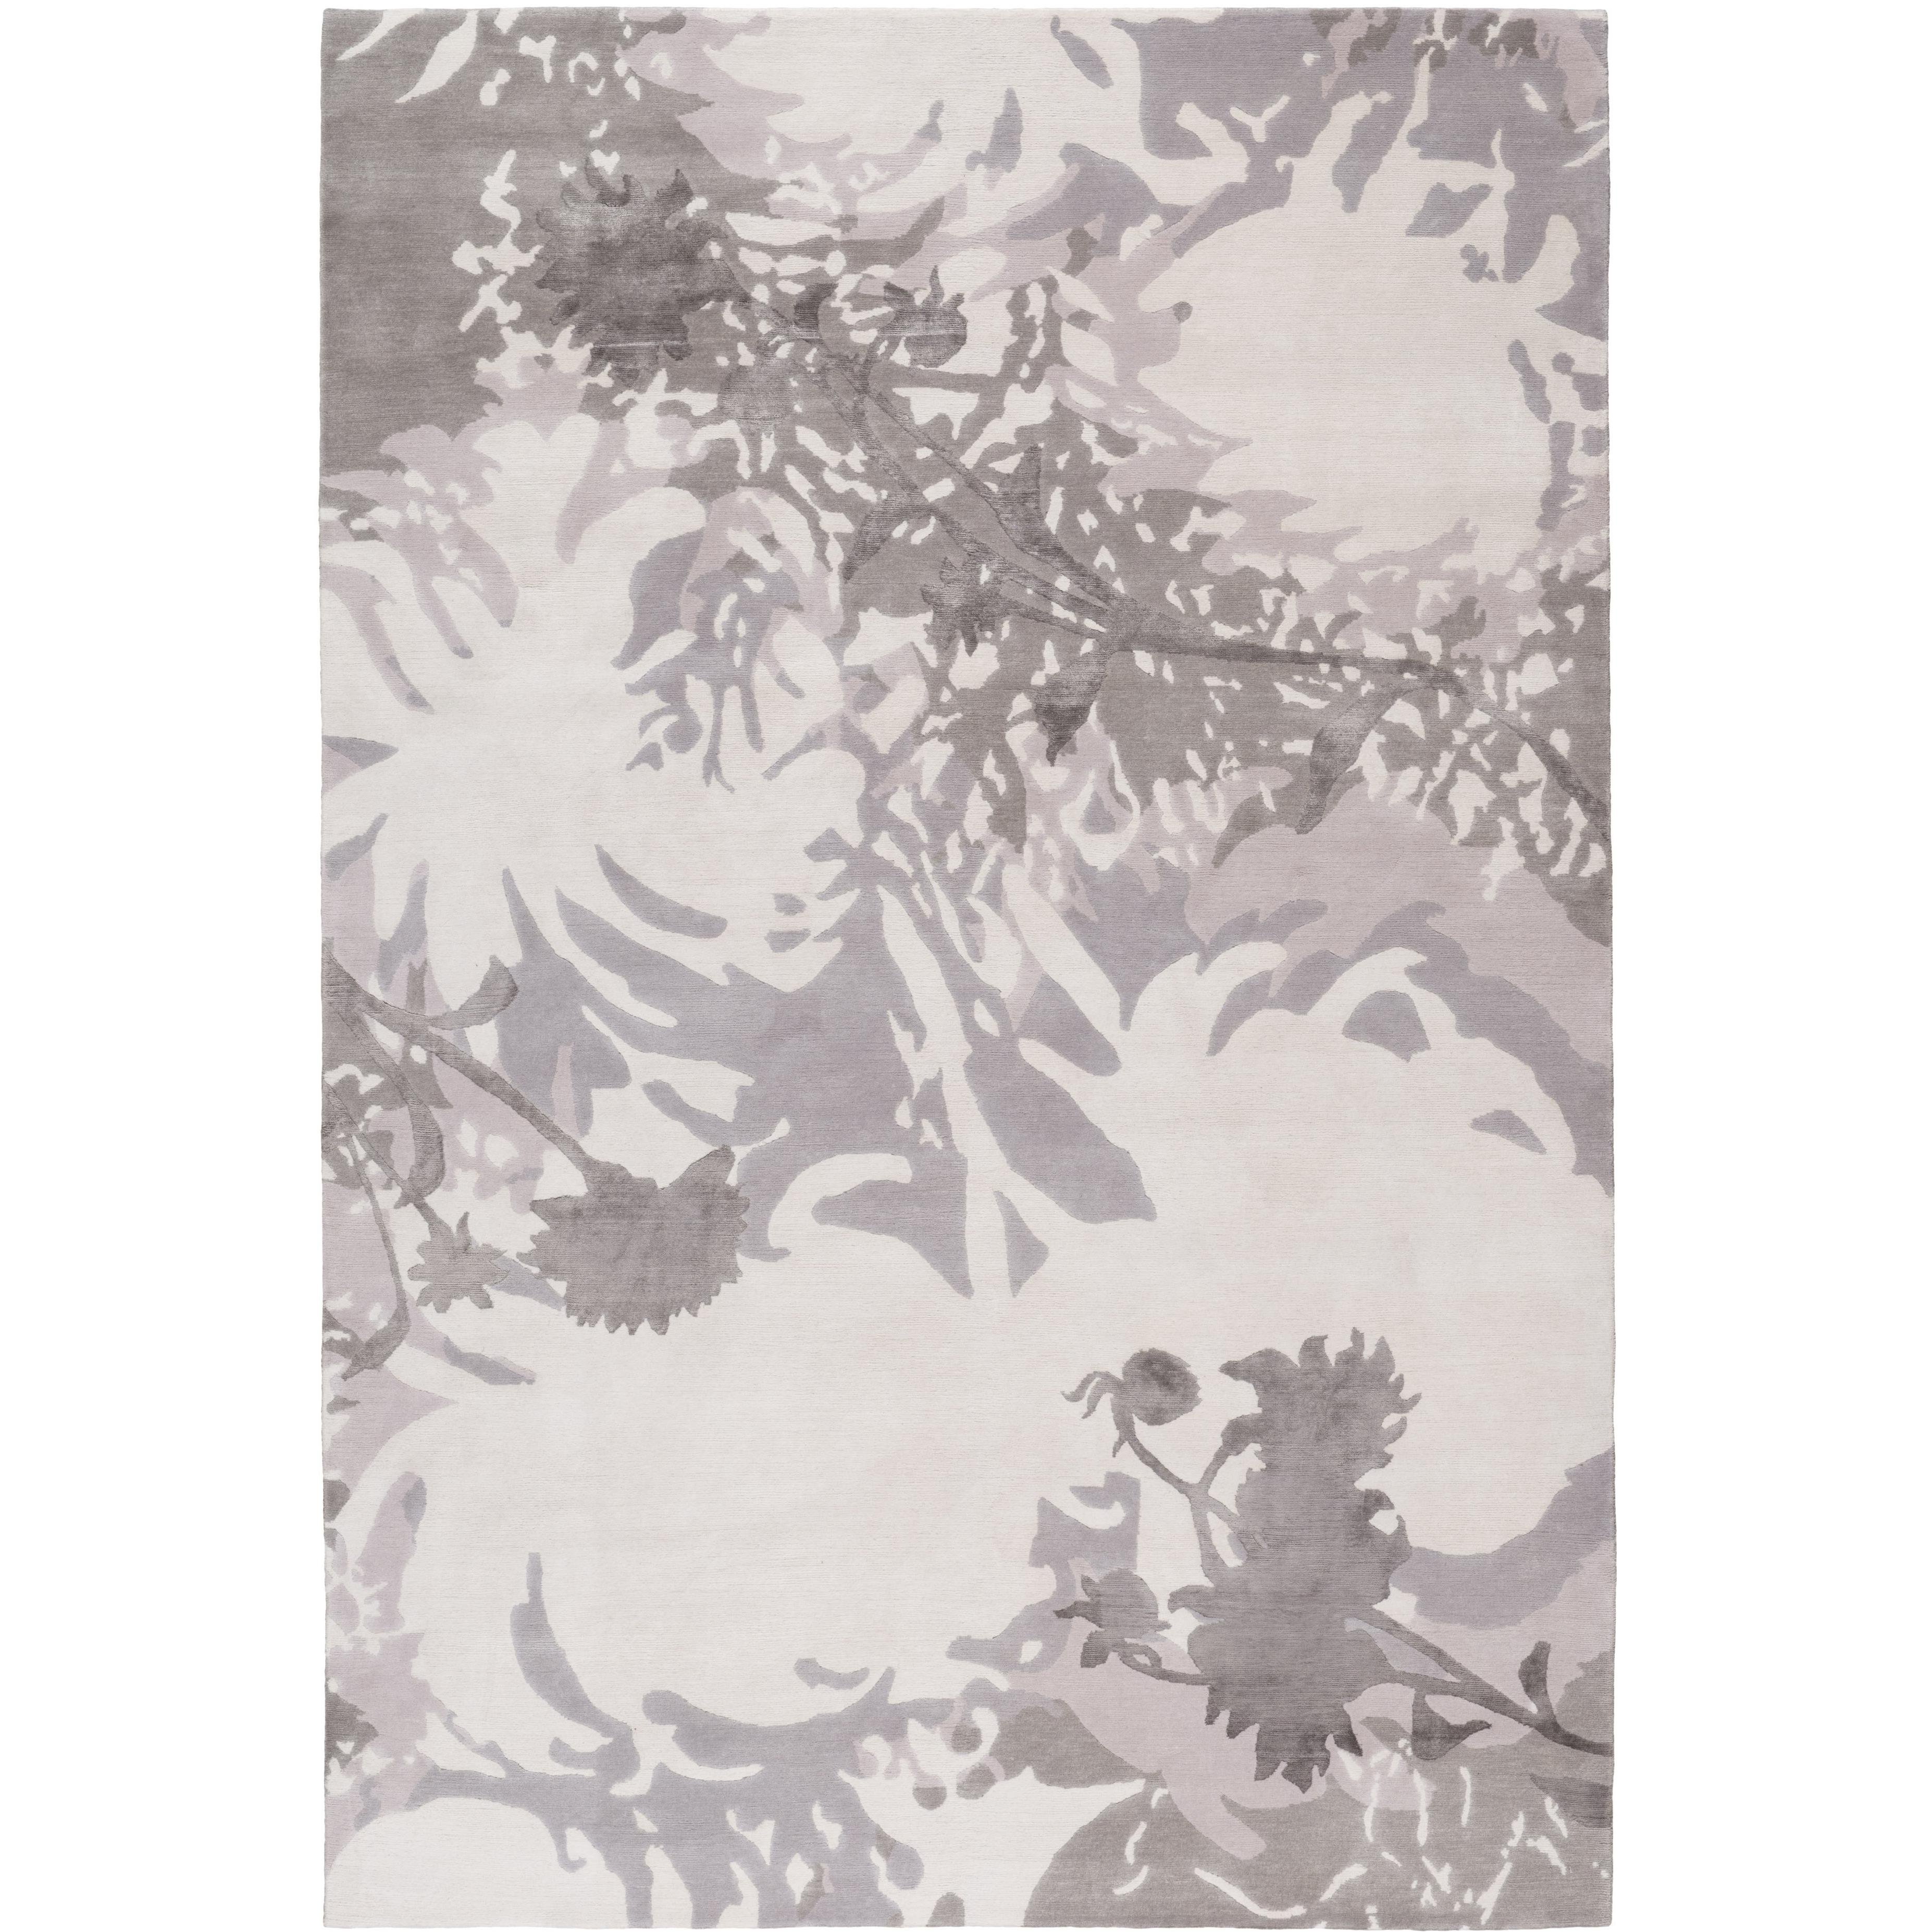 Dahlia Hand-Knotted 10x8 Rug in Wool and Silk by Alexandra Champalimaud